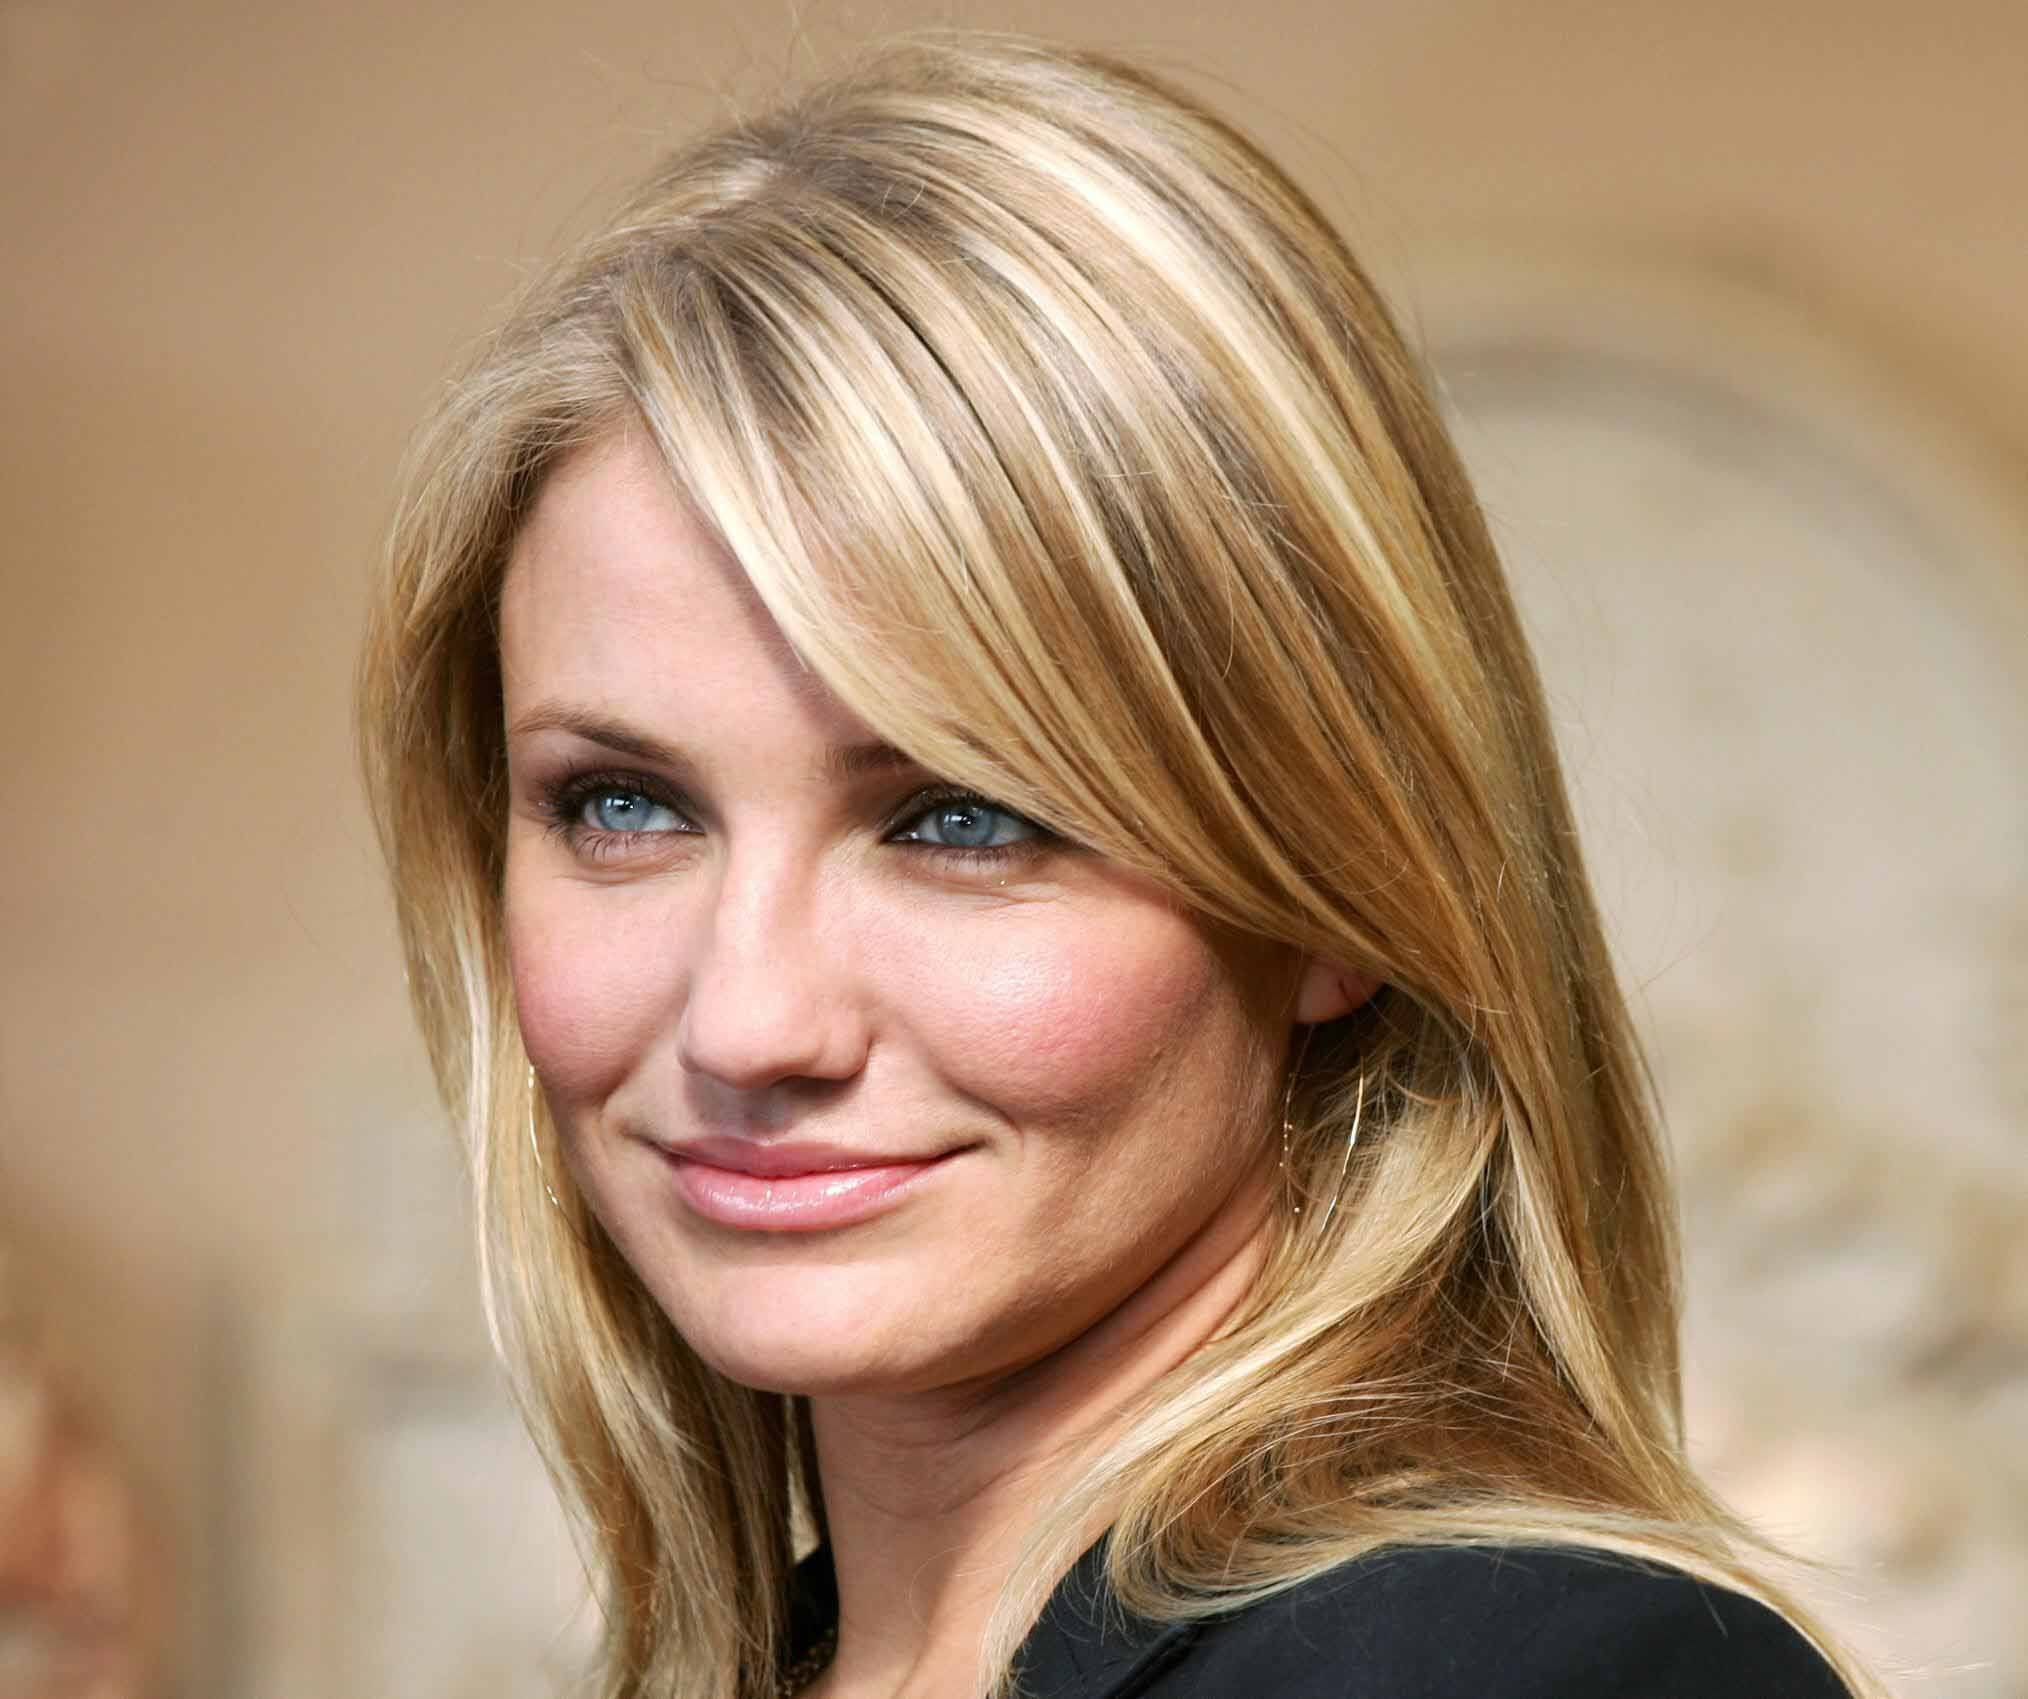 Cameron Diaz Hair In The Holiday Google Search Cameron Diaz Hair Hair Styles Cool Hairstyles